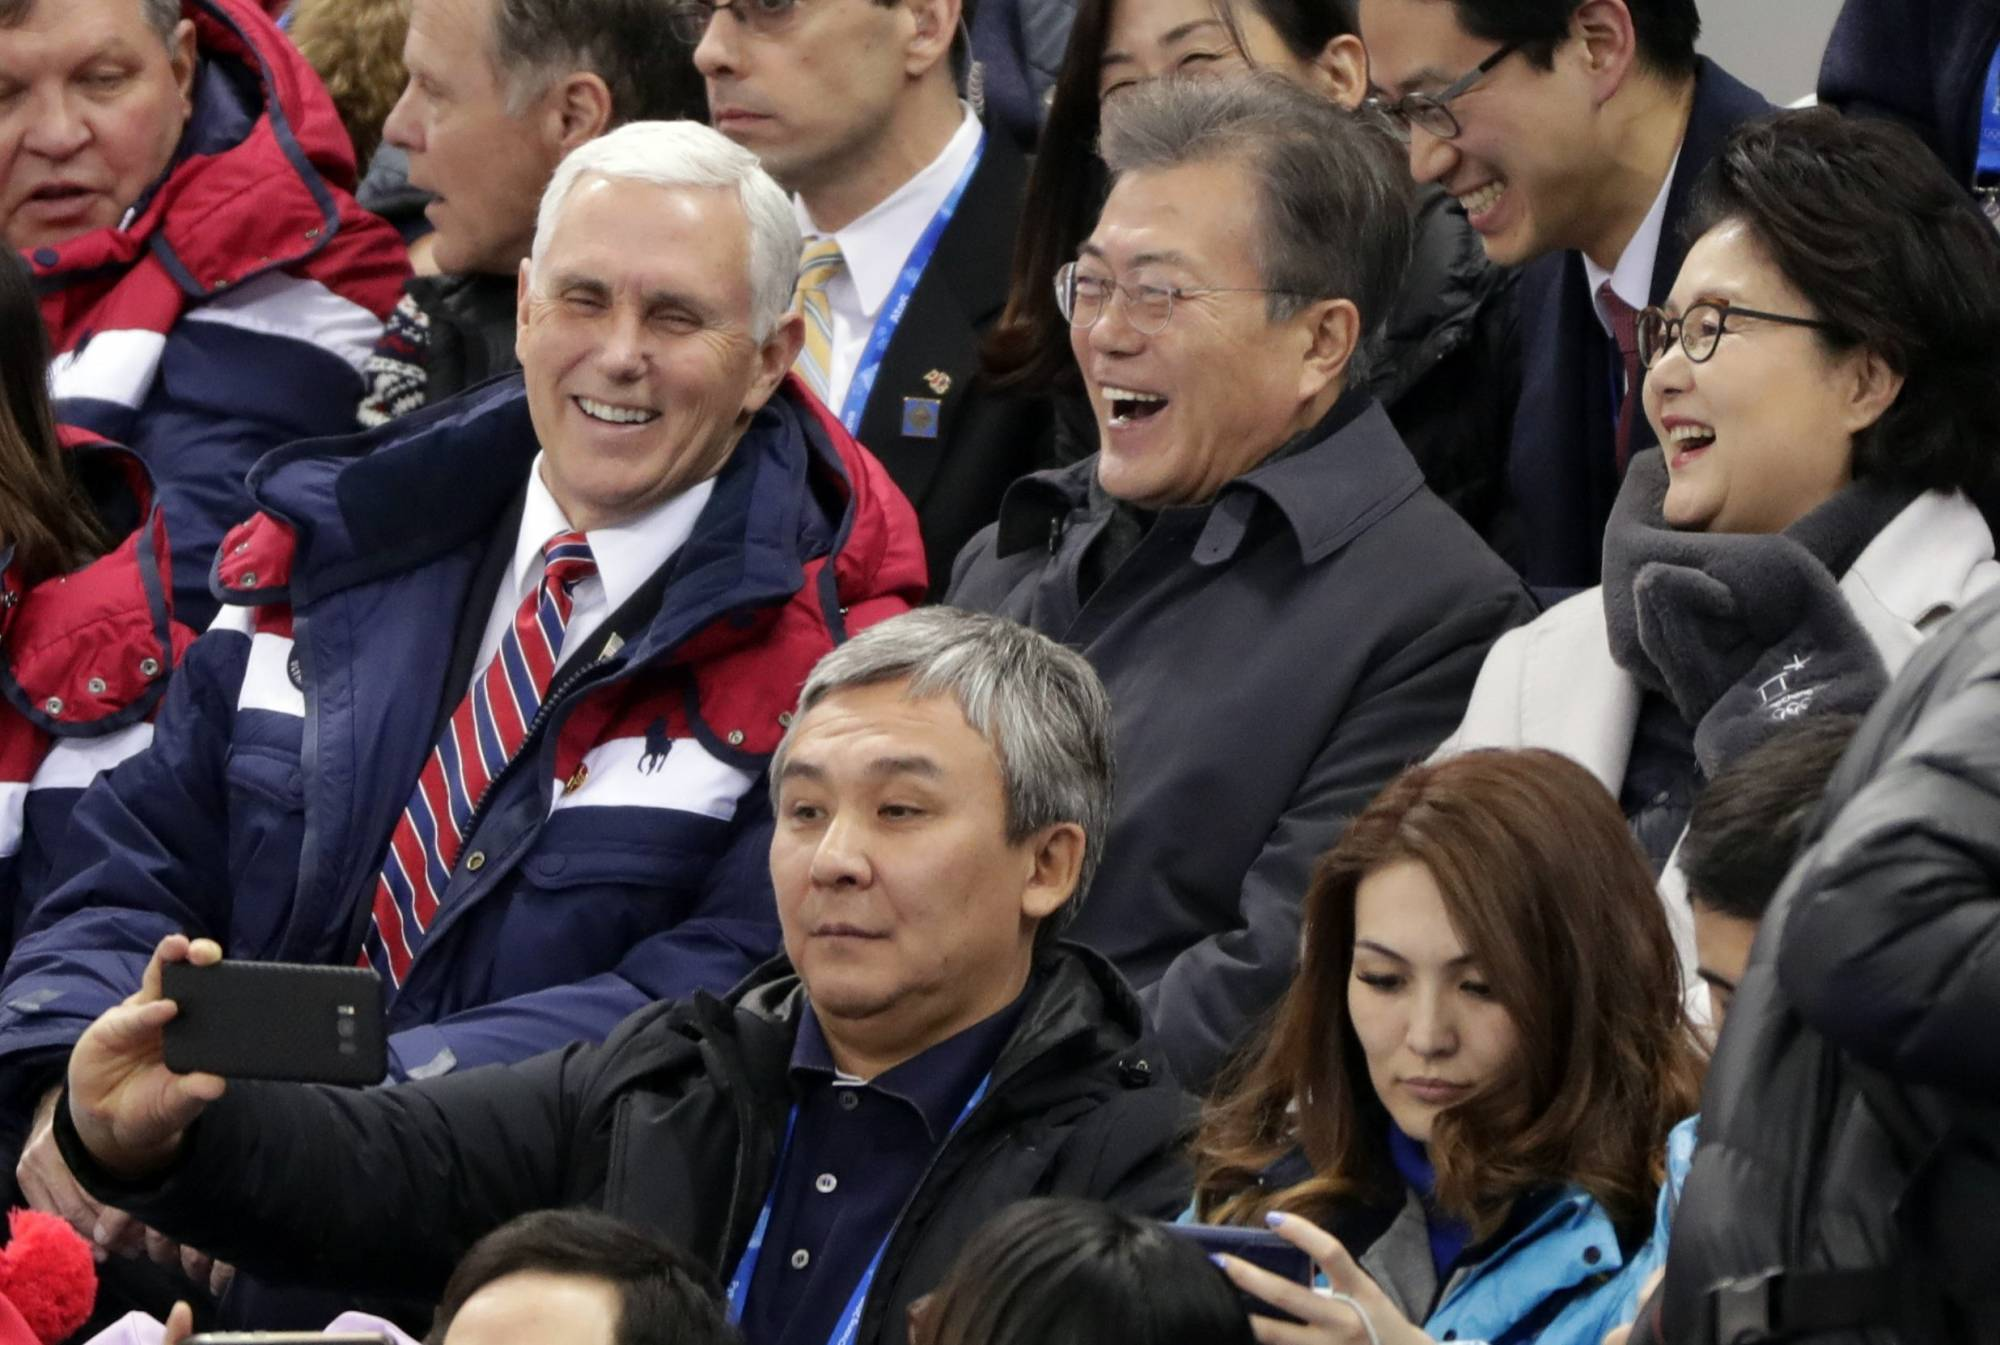 Mike Pence didn't snub North Koreans deliberately, officials say